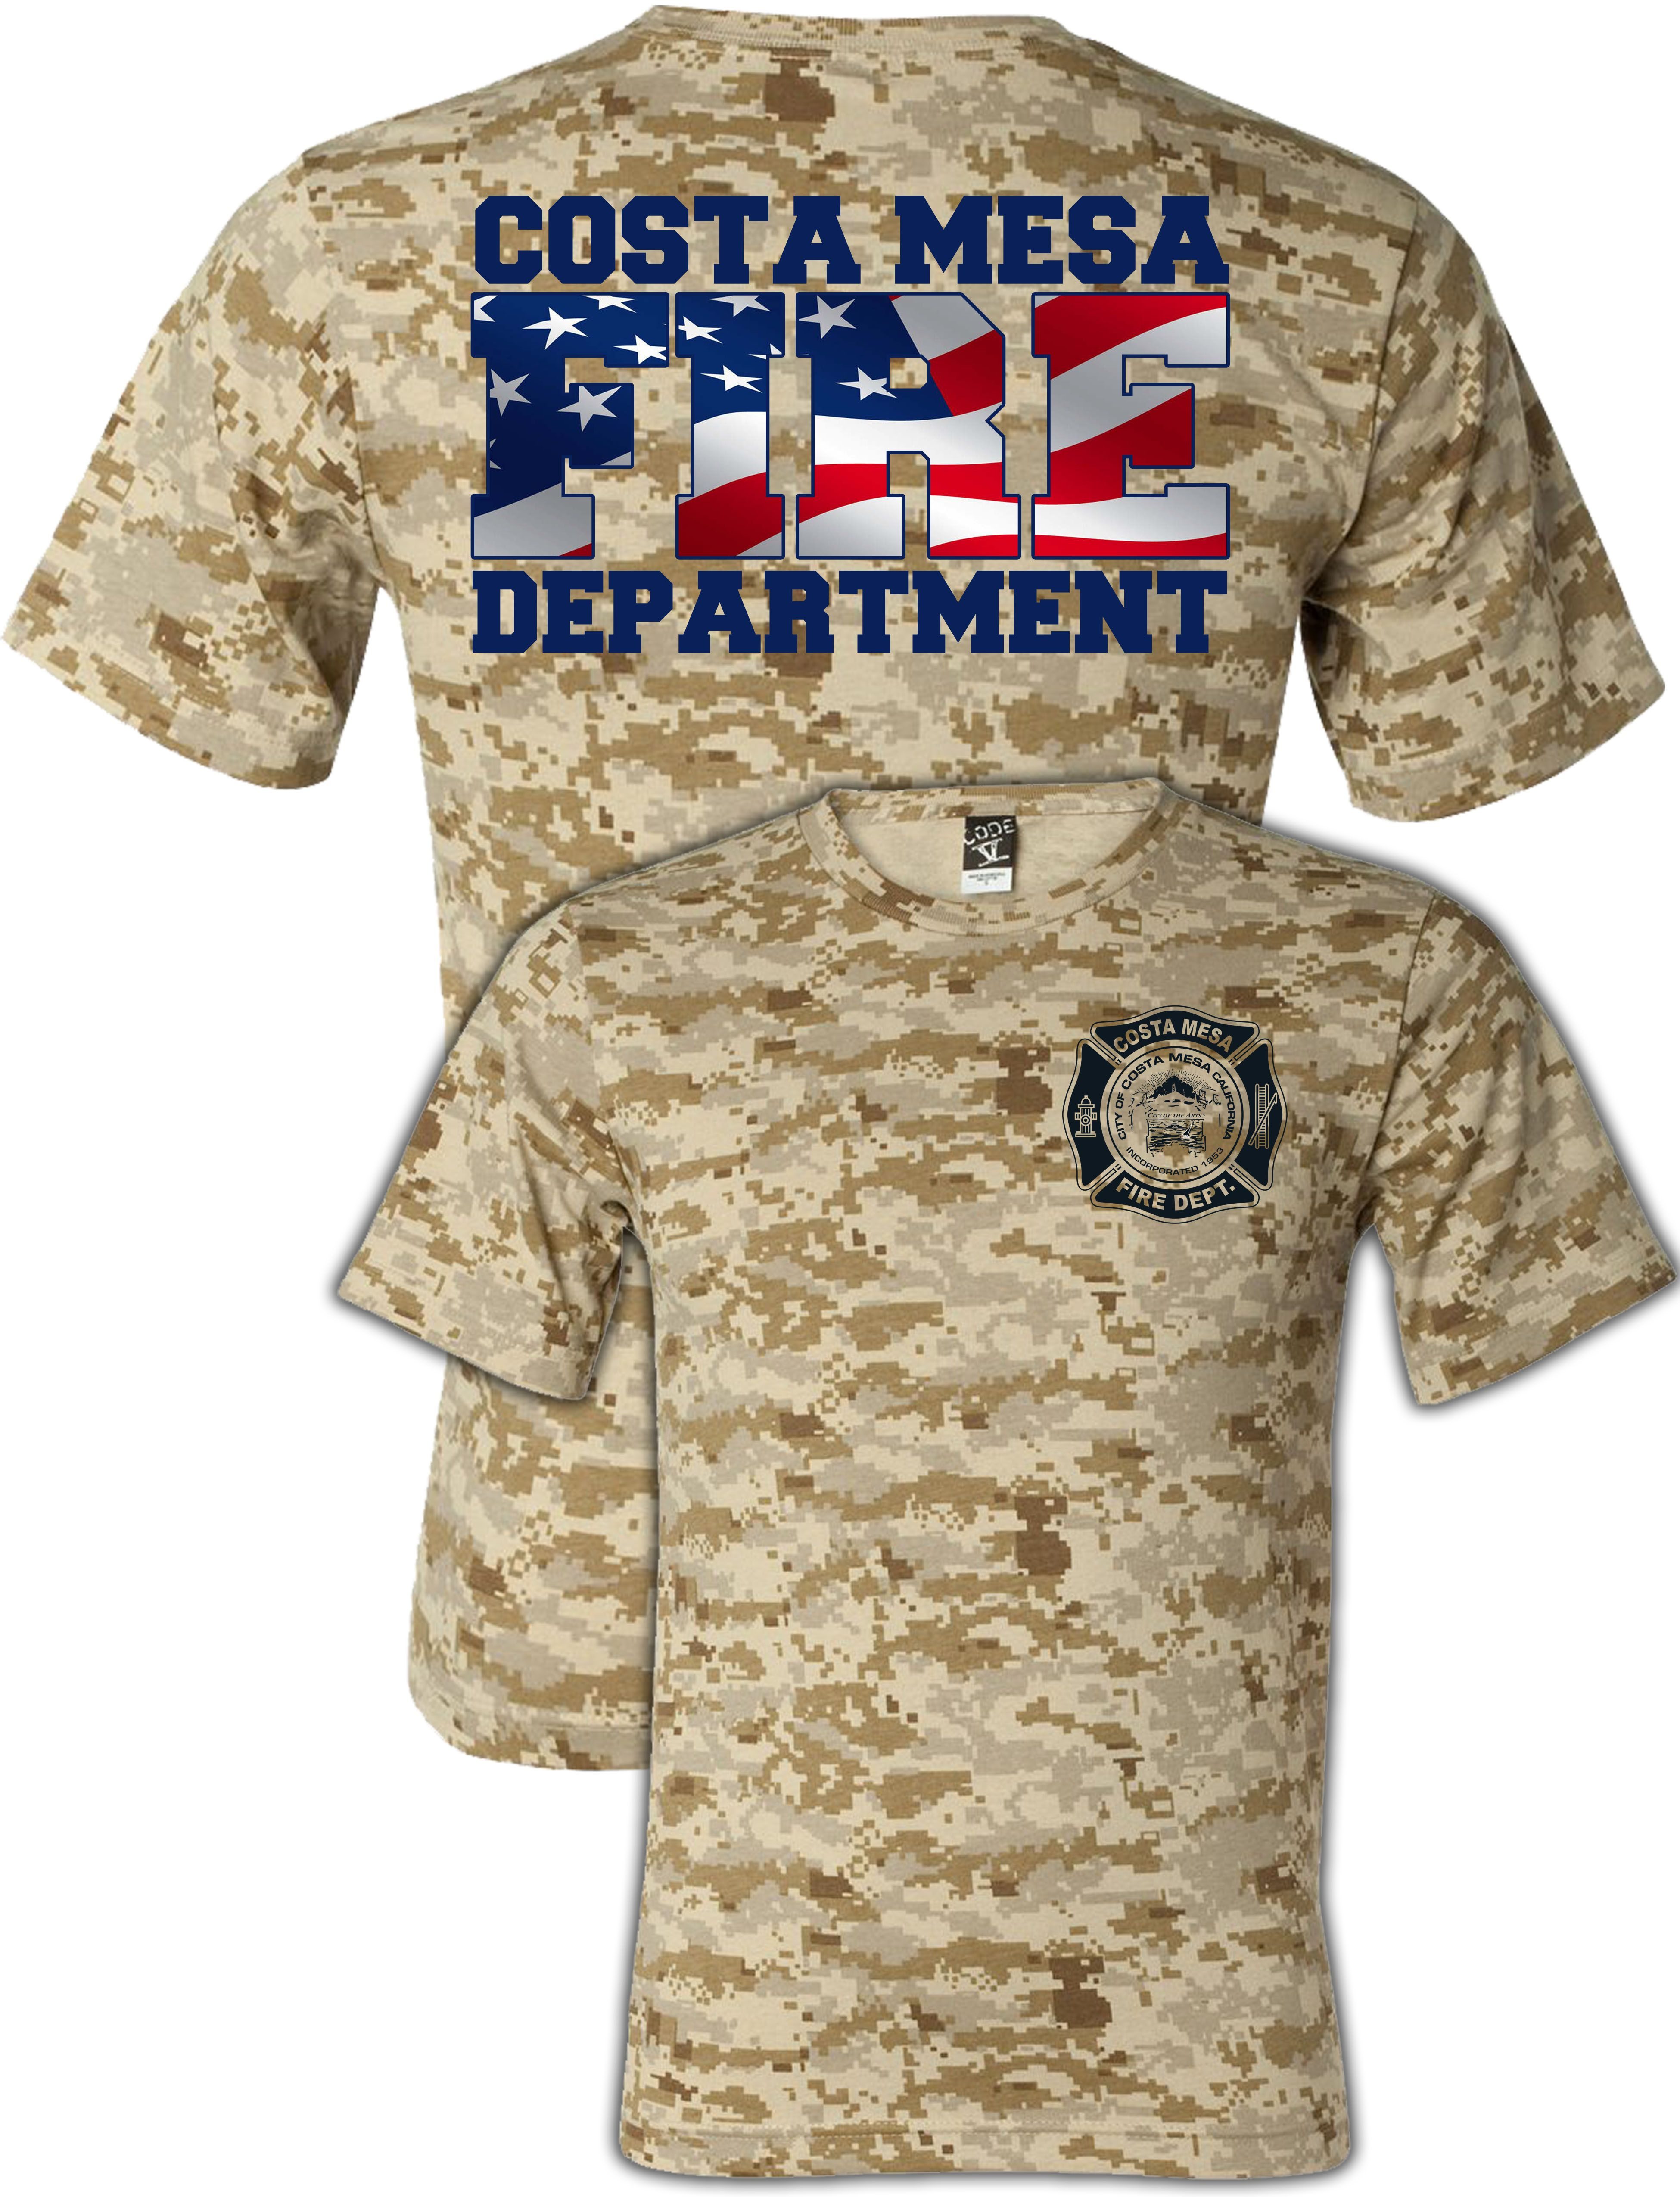 54 Rock The Red And Back The Blue Ideas Shirts Firefighter Firefighter Wife